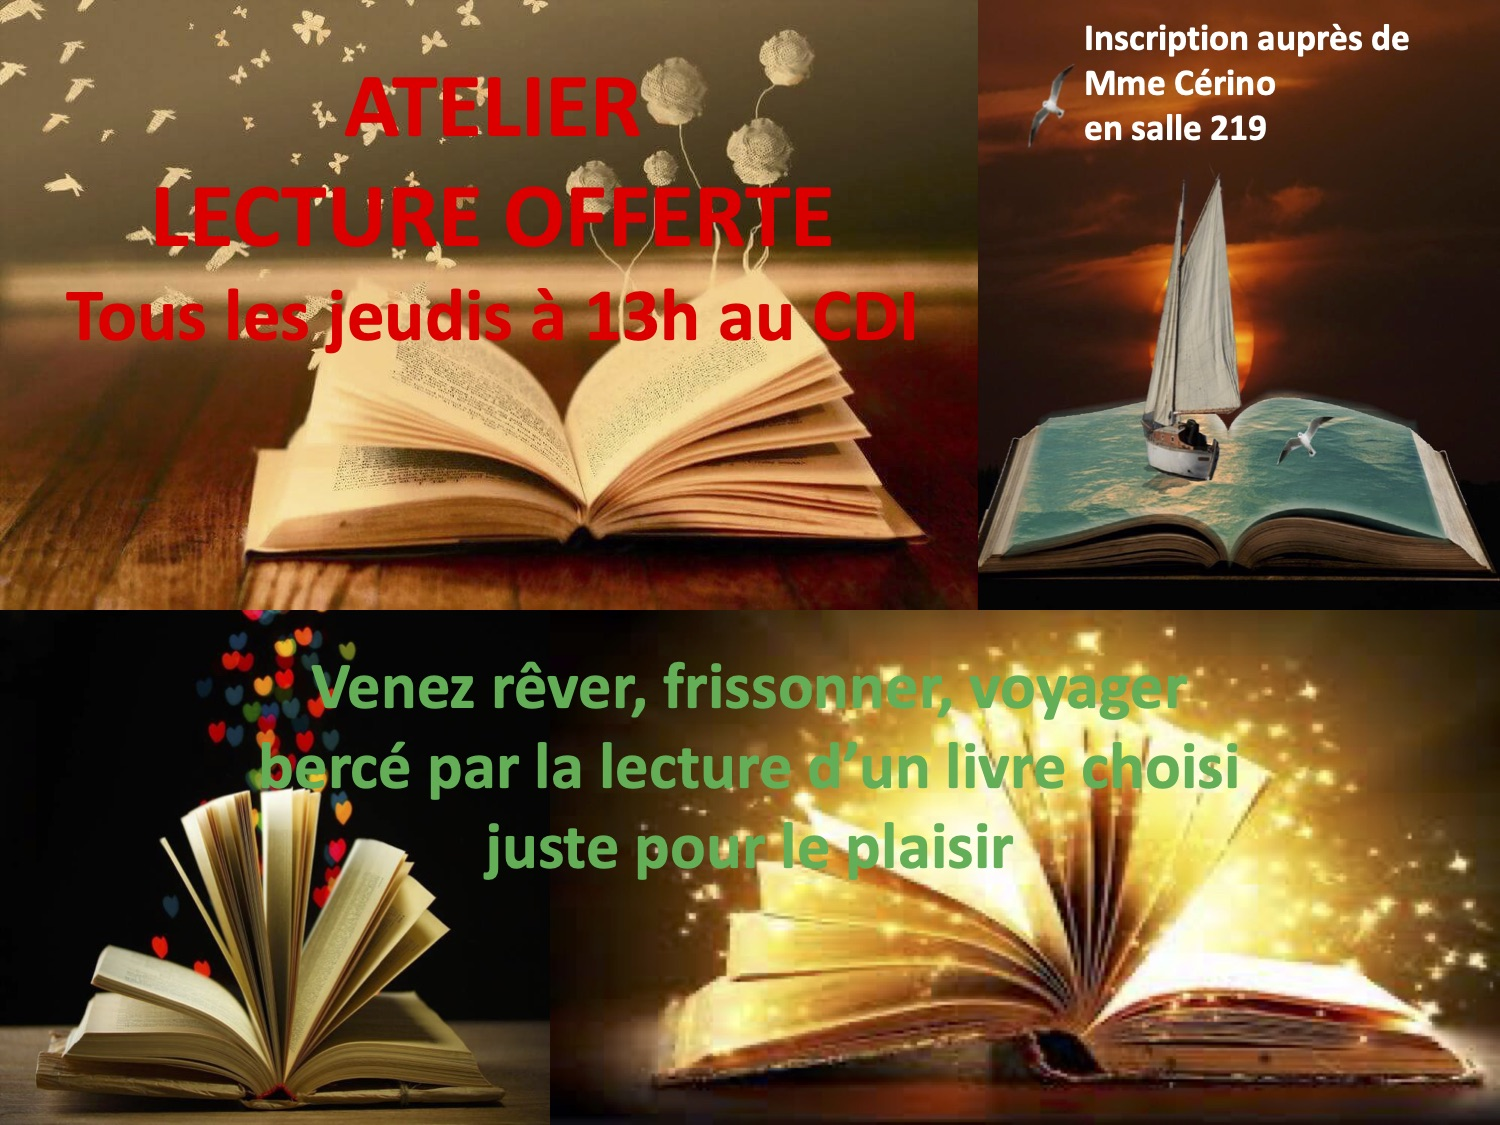 atelier lecture offerte